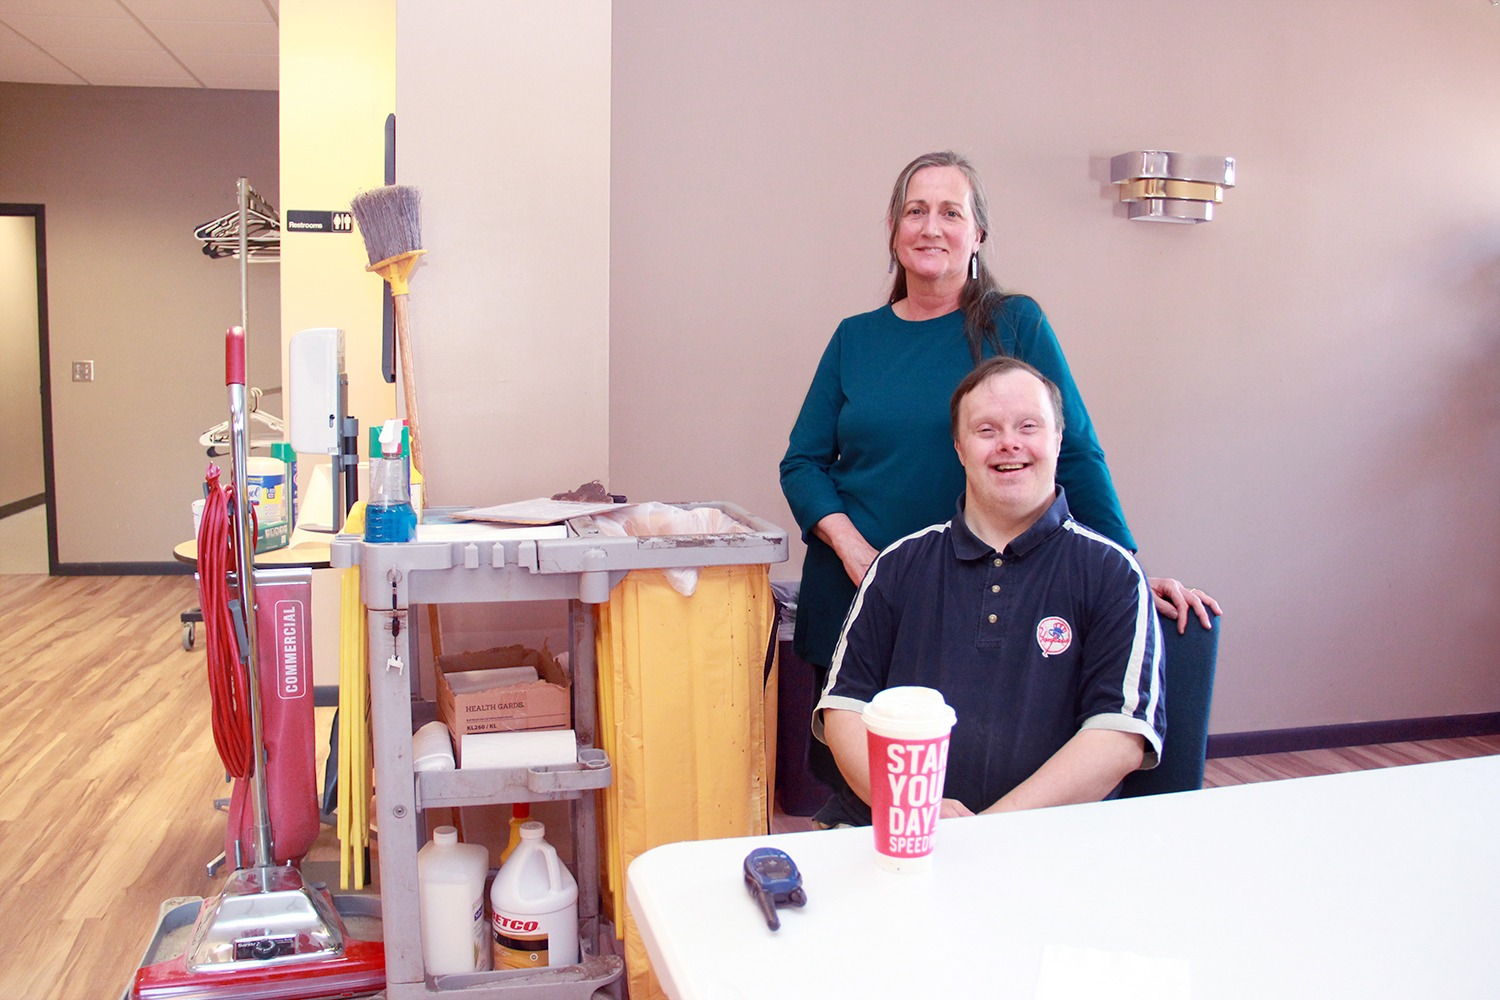 Care Coordination Manager Terri McCue poses with Jason LeBeau as he sits enjoying his extra-large decaf coffee before he starts his shift.